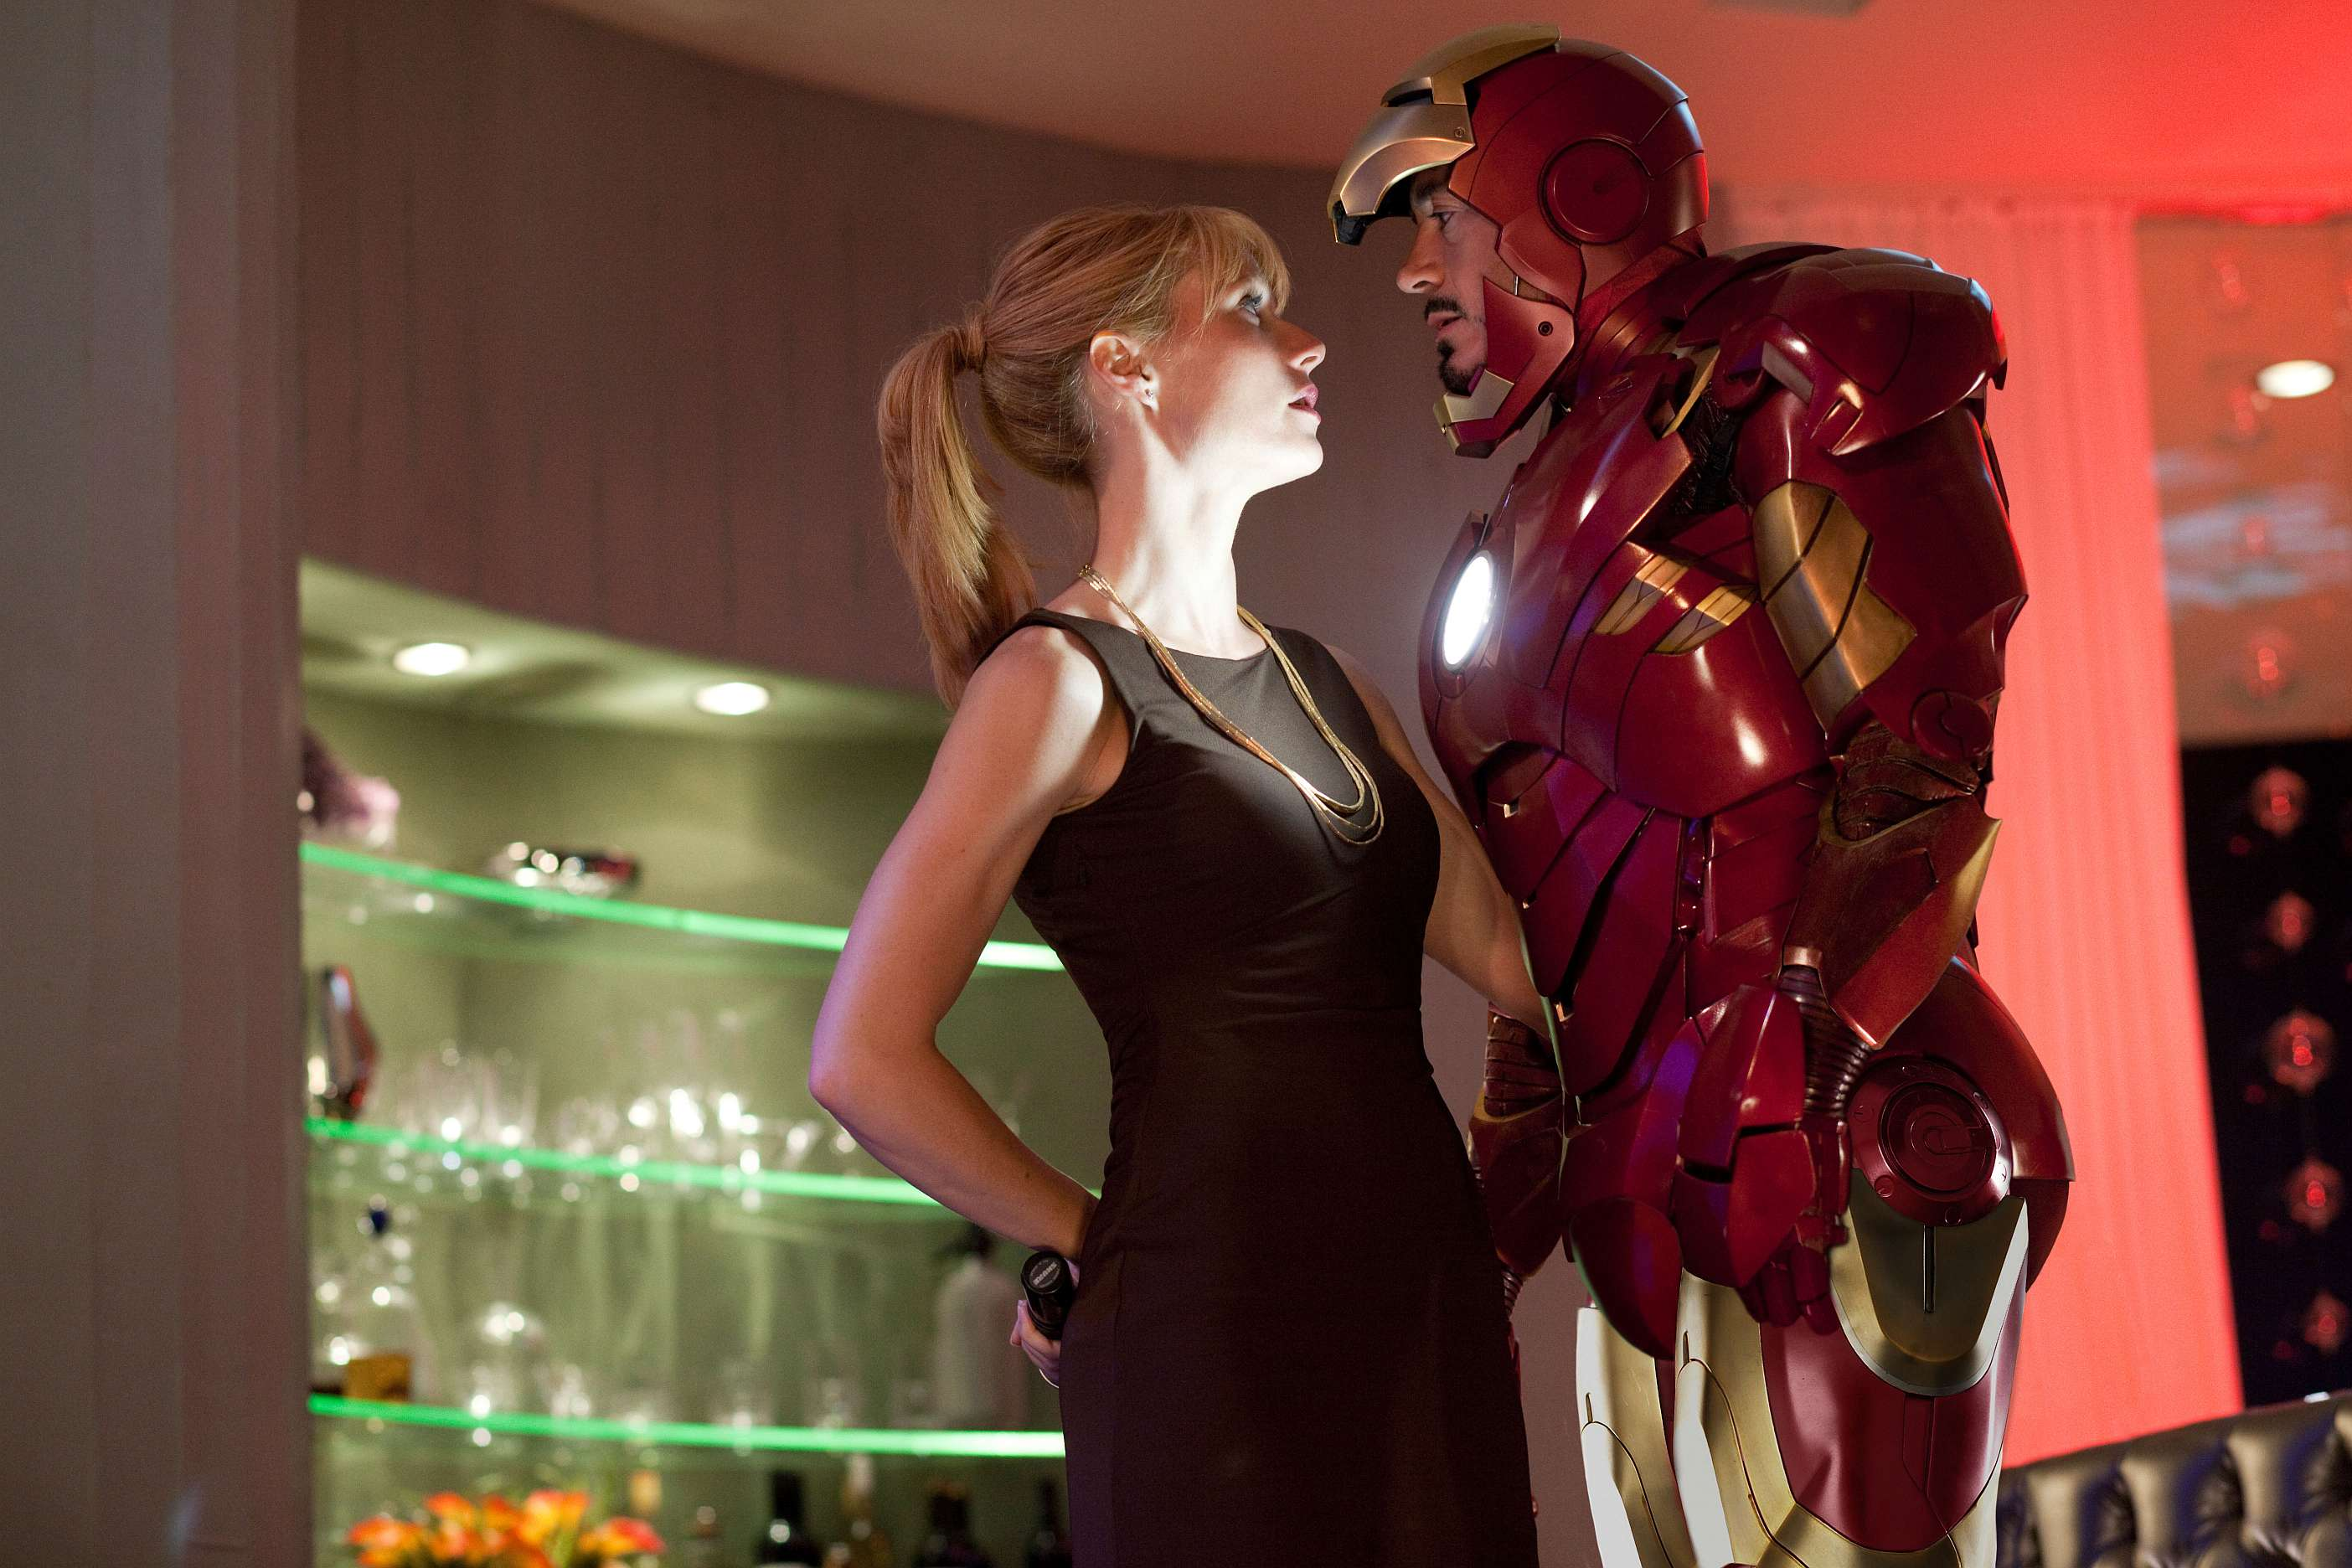 Iron Man 2 movies in Italy